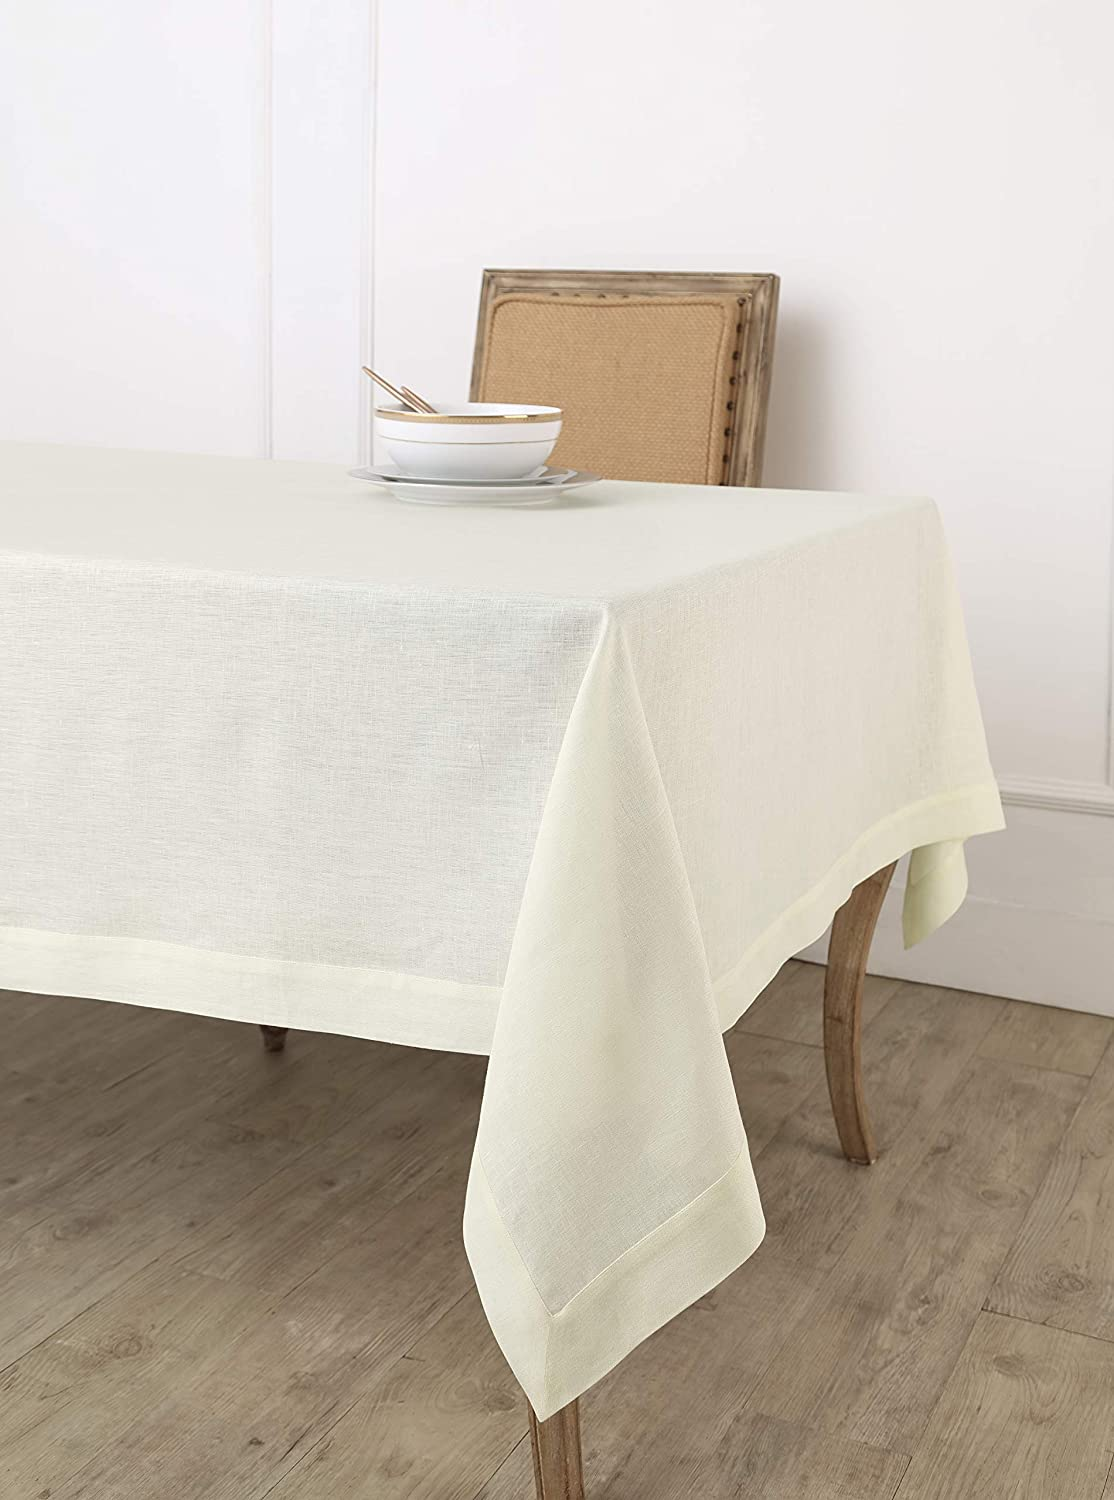 Solino Home 100% Pure Linen Tablecloth - 60 x 90 Inch Ivory, Natural Fabric, European Flax - Athena Rectangular Tablecloth for Indoor and Outdoor use